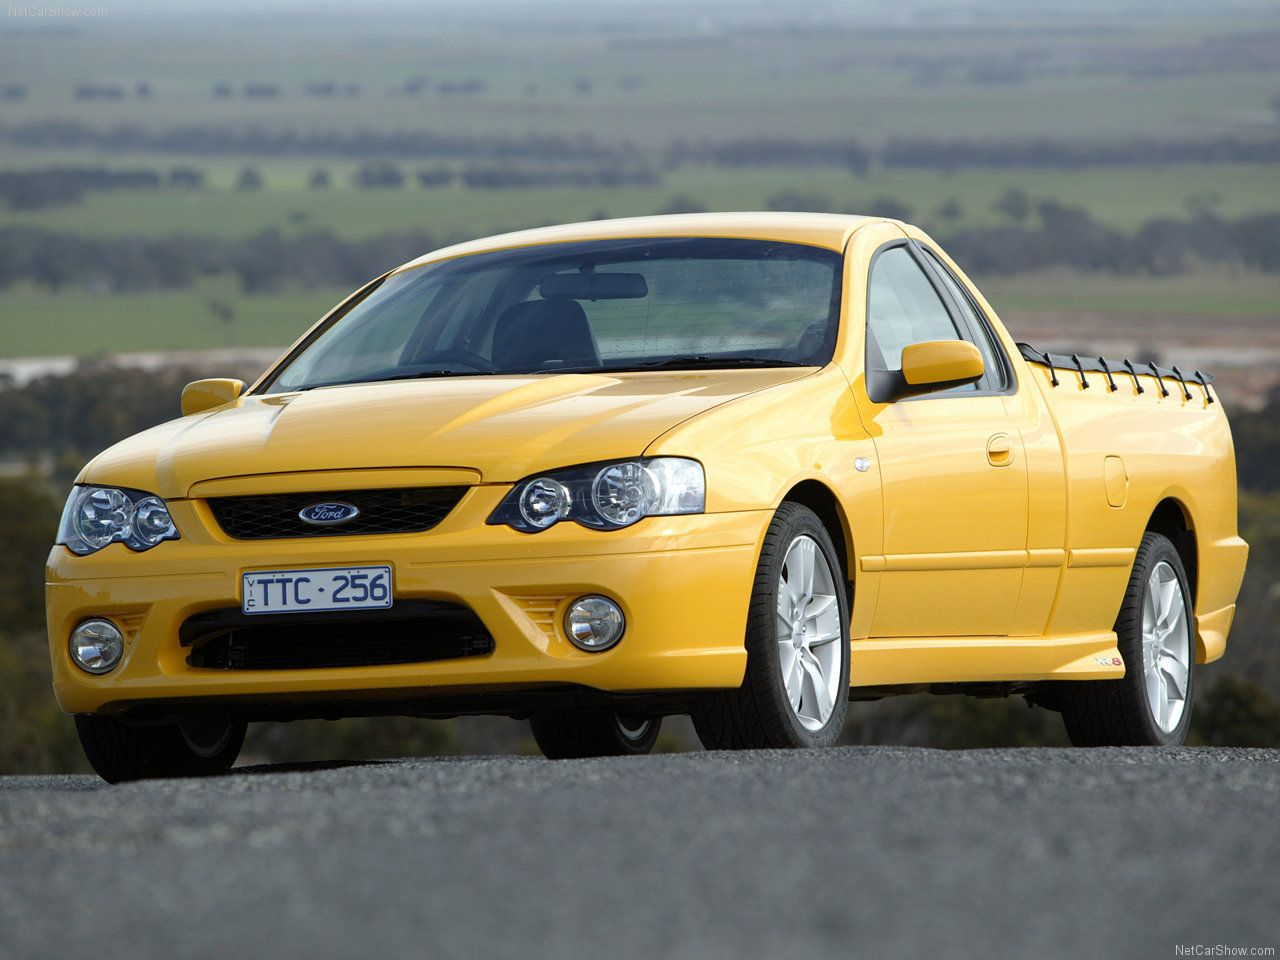 Pin By Eldon On Utes In 2020 Ford Falcon Xr8 Australian Cars Ford Falcon